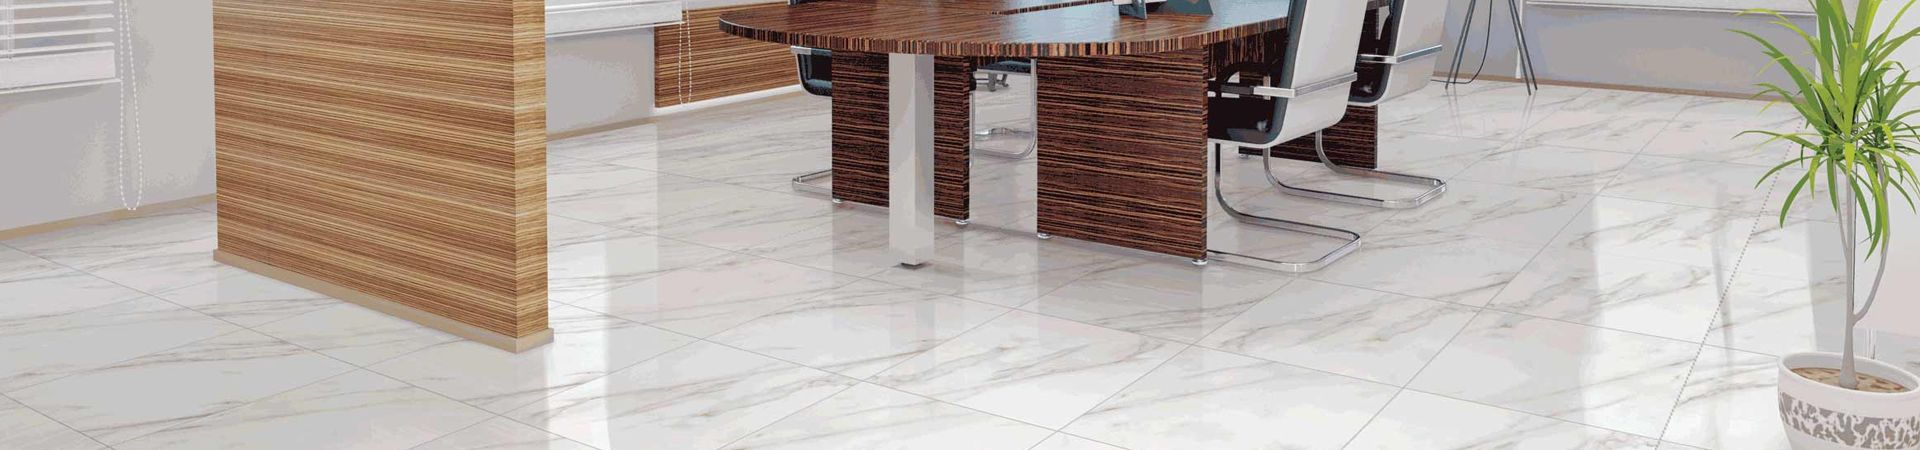 We are manufacturers and exporters of digital vitrified tiles in we are manufacturers and exporters of digital vitrified tiles in morbi gujarat india dailygadgetfo Images